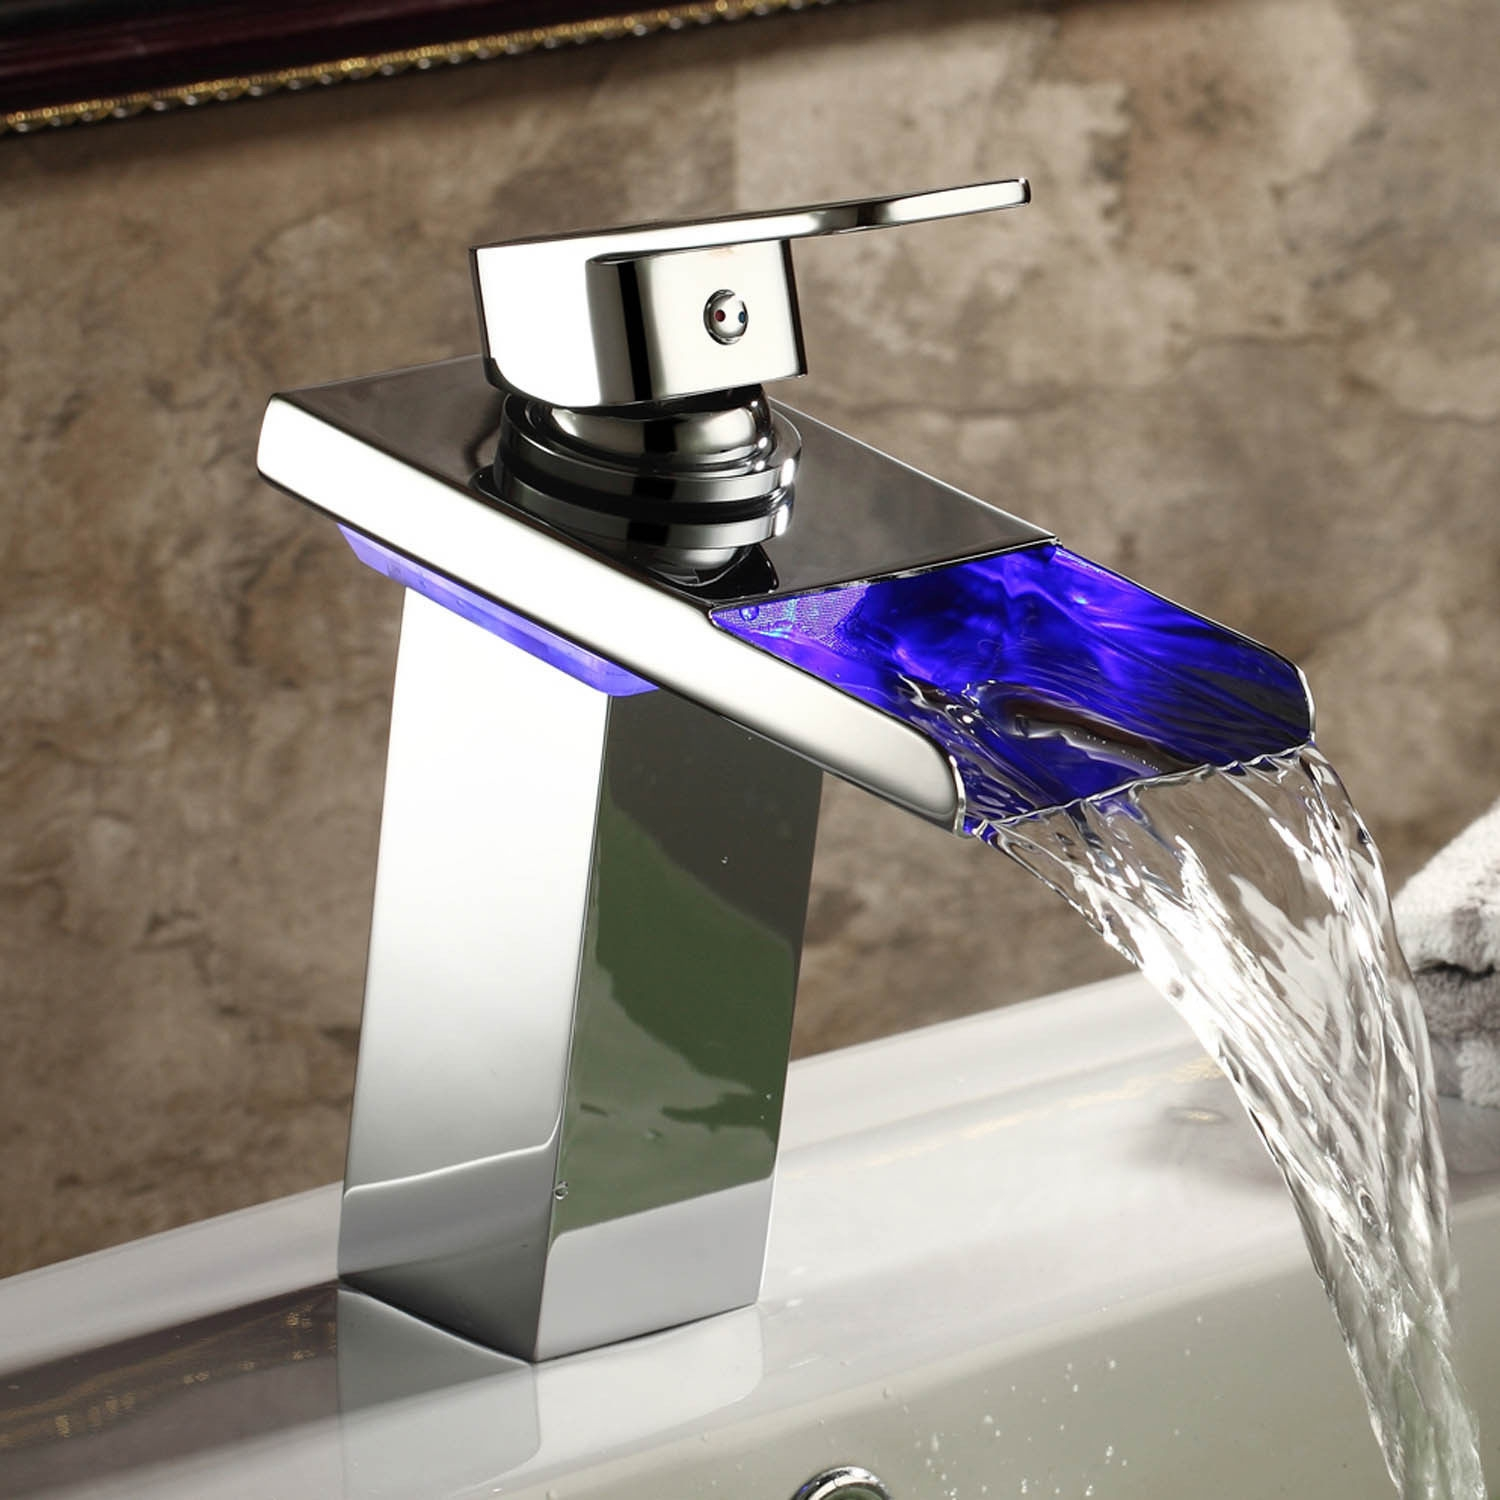 led waterfall faucets for vessel sinks led waterfall faucets for vessel sinks led faucet product categories kokols inc 1500 x 1500